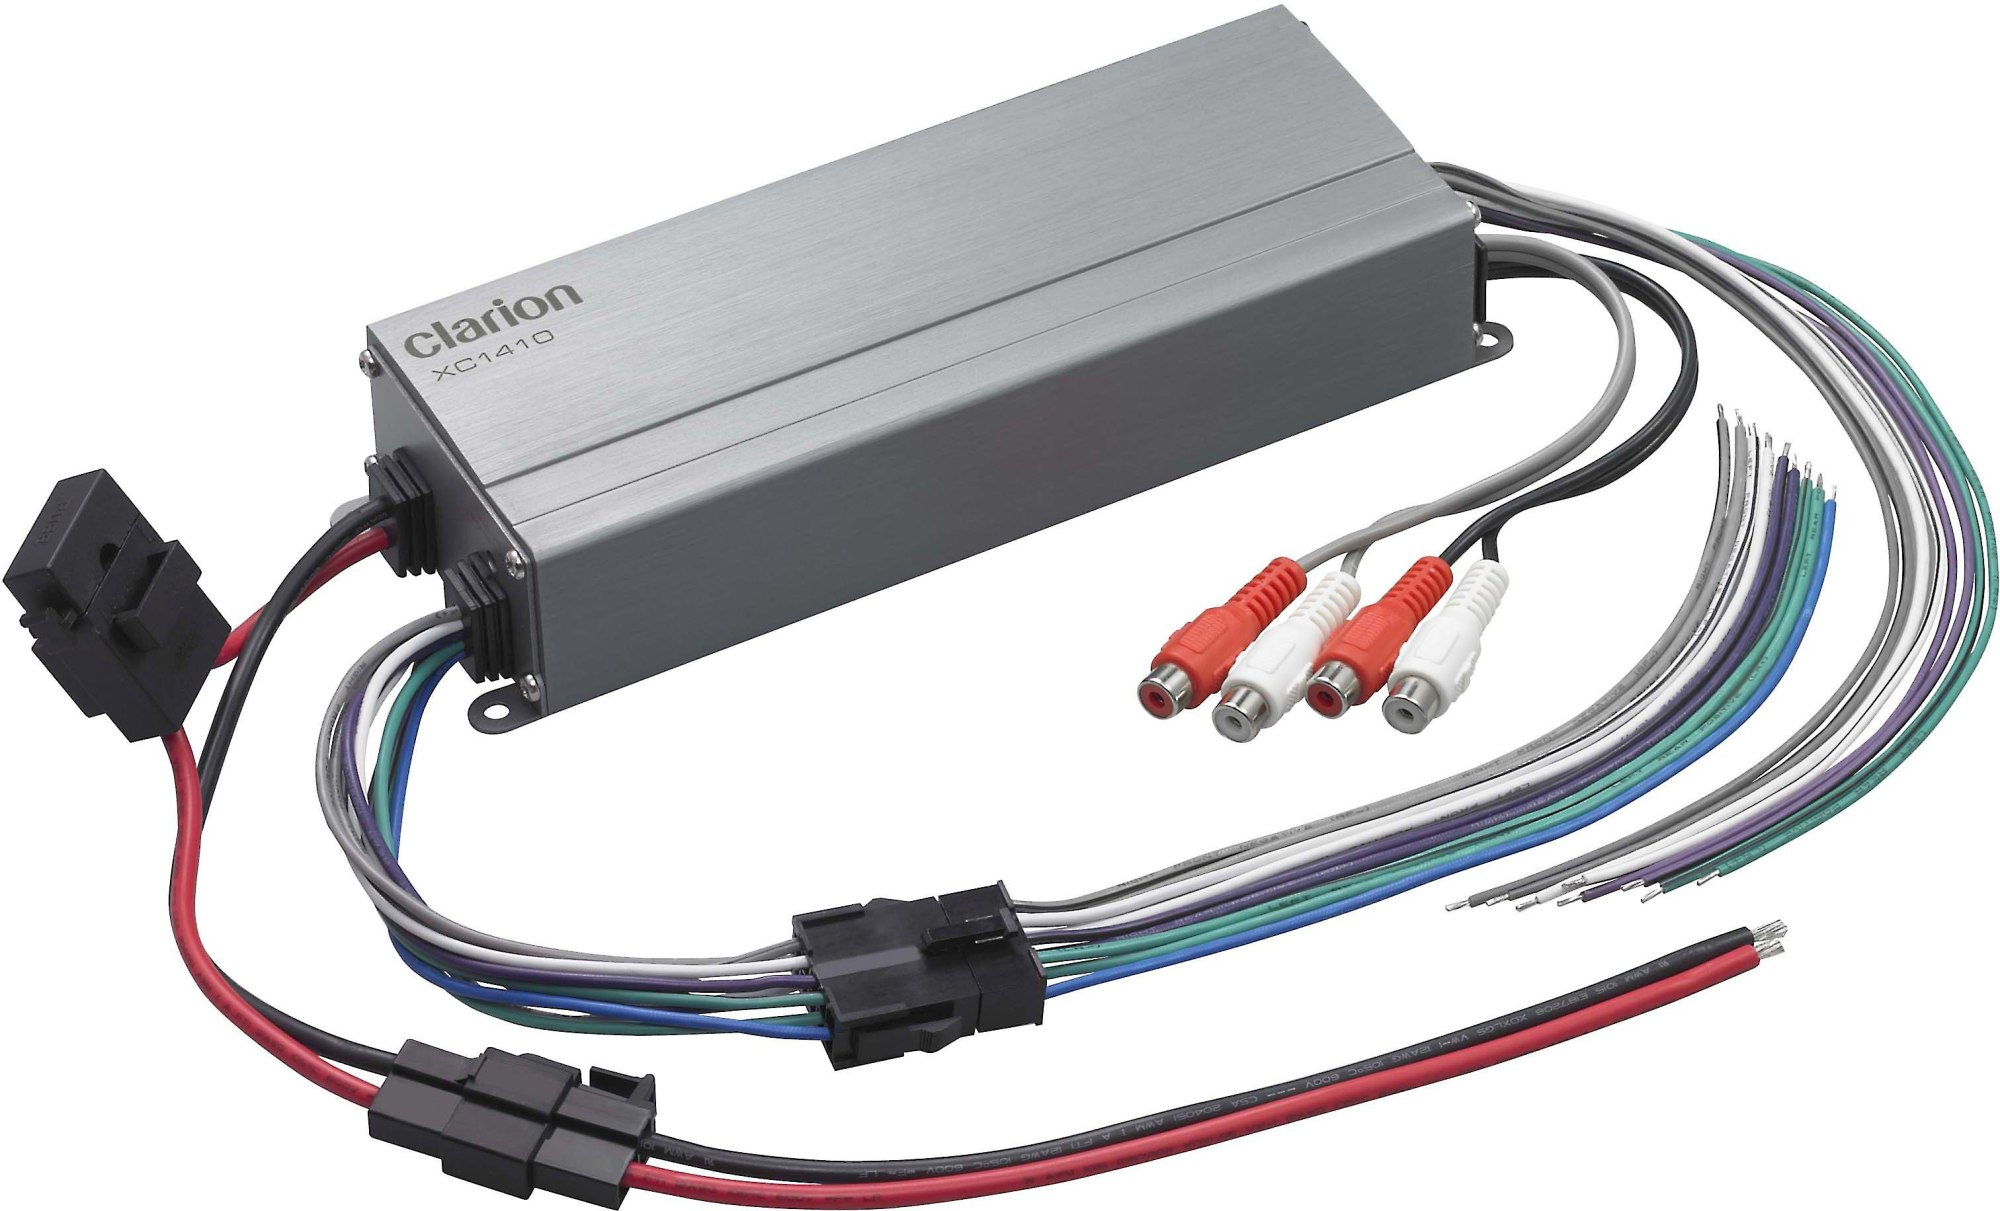 hight resolution of clarion xc1410 compact 4 channel amplifier 50 watts rms x 4 at crutchfield com